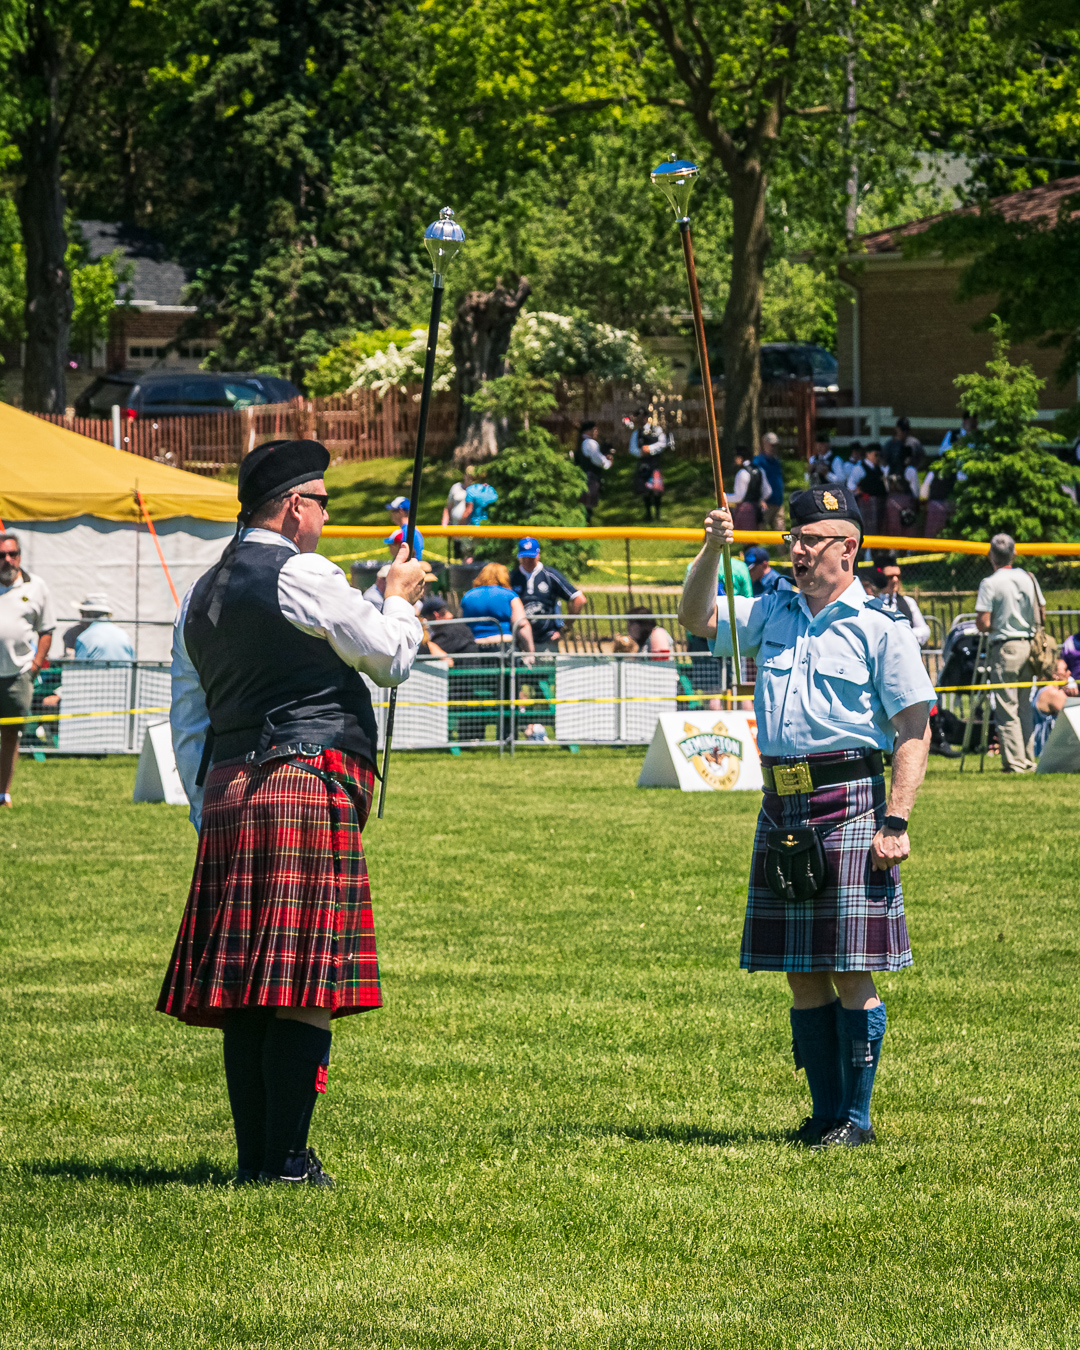 Georgetown Highland Games - Band Competitions